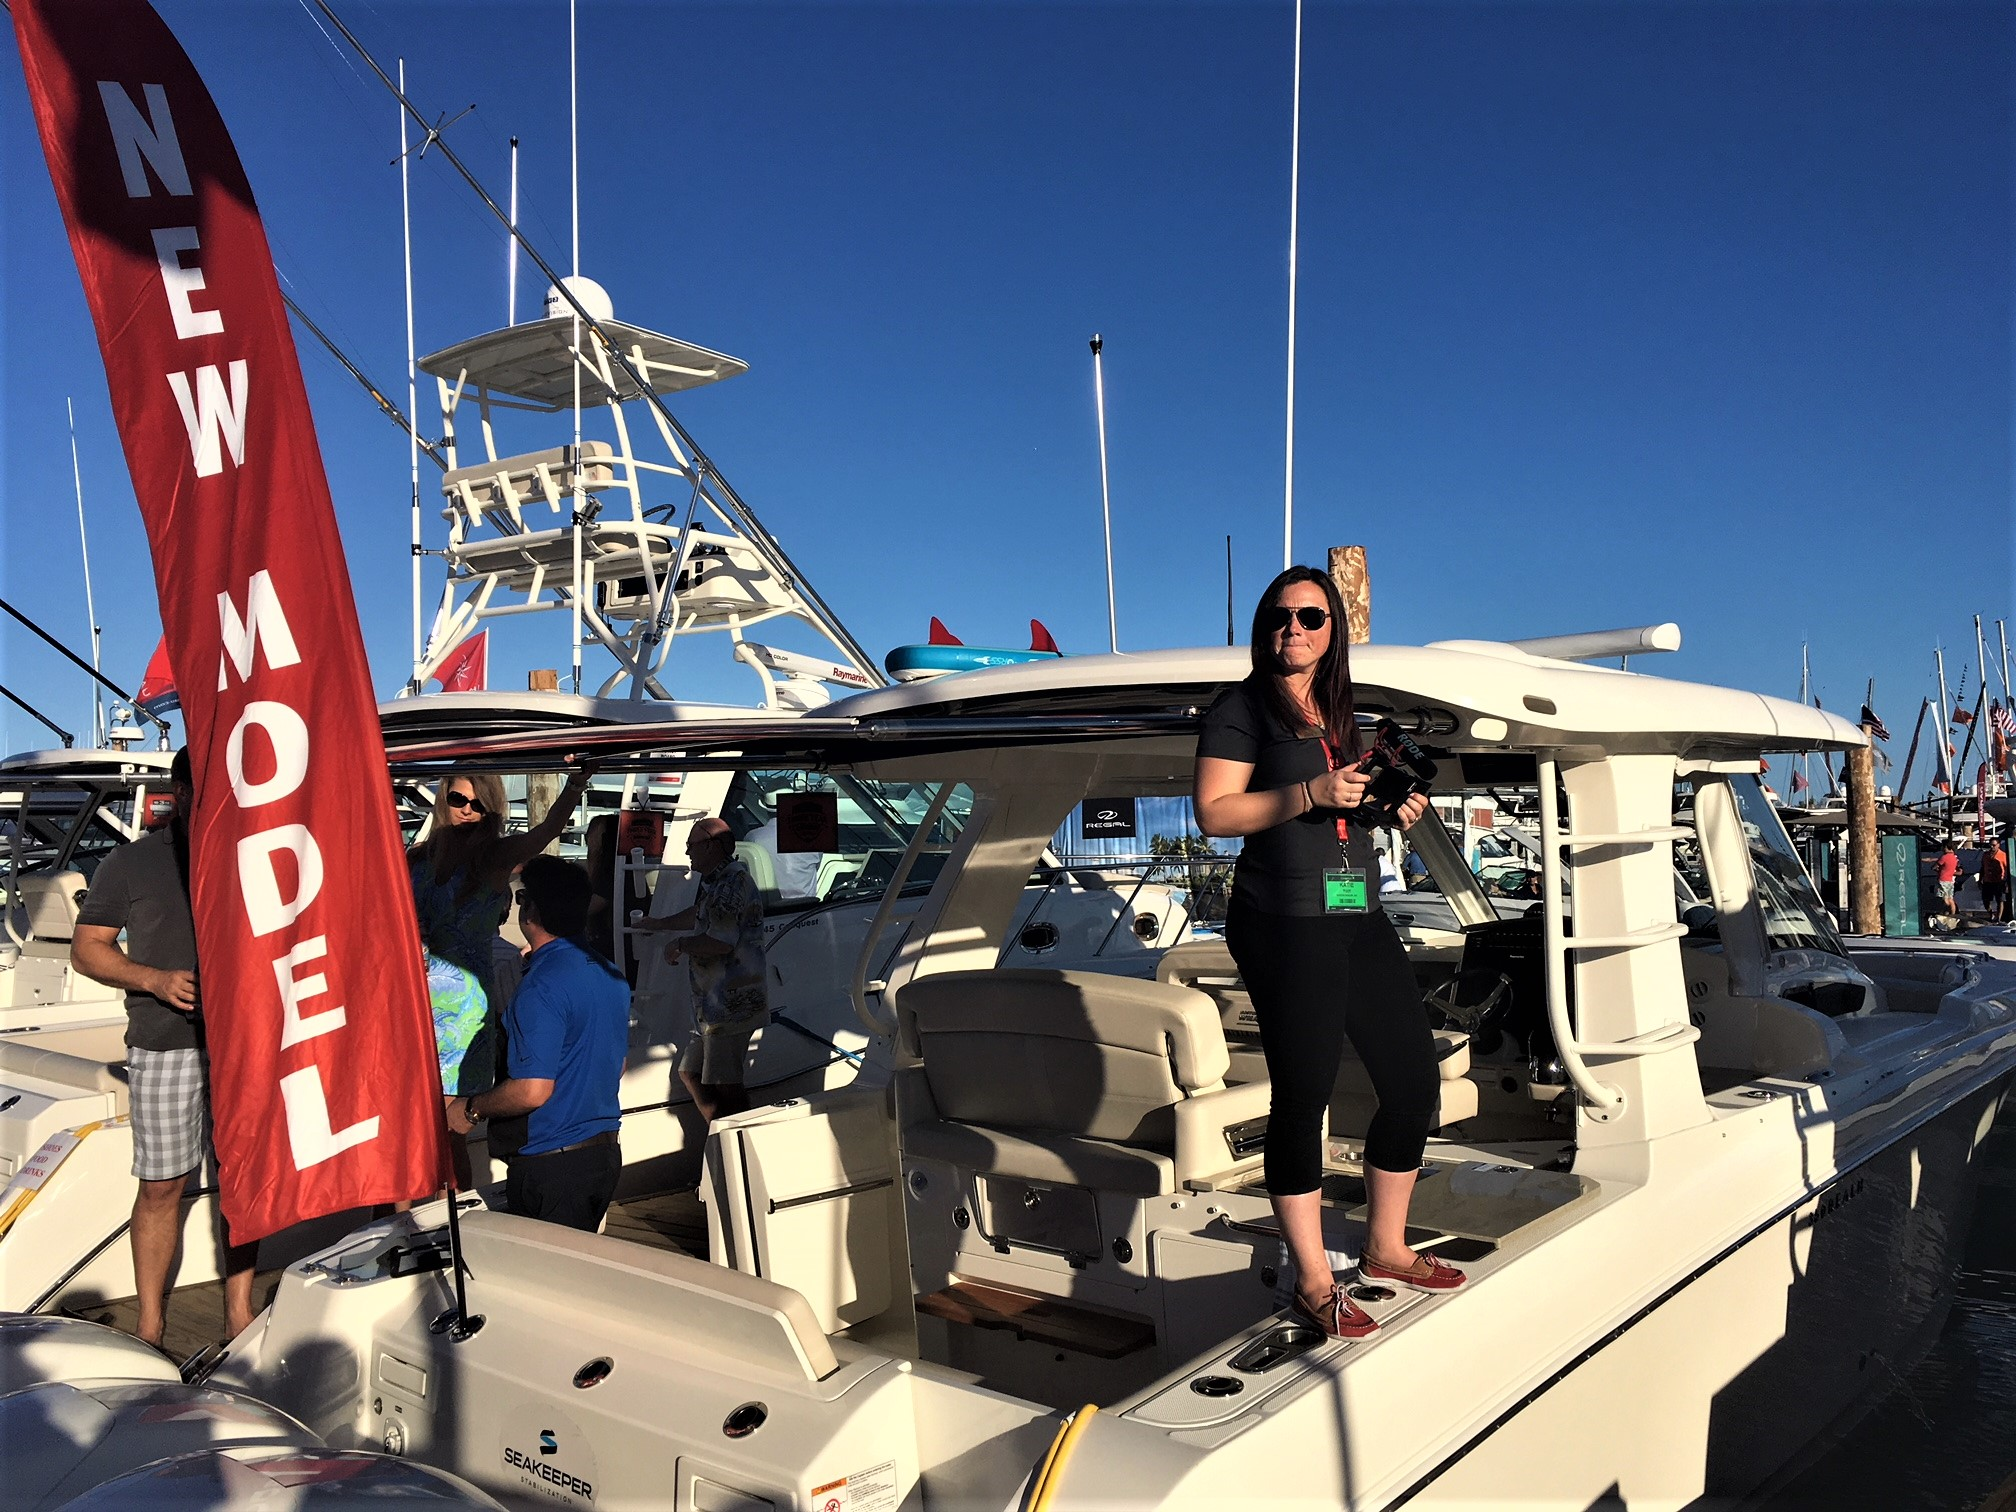 Miami boat show 2018 pictures to pin on pinterest pinsdaddy - Miami boat show ...